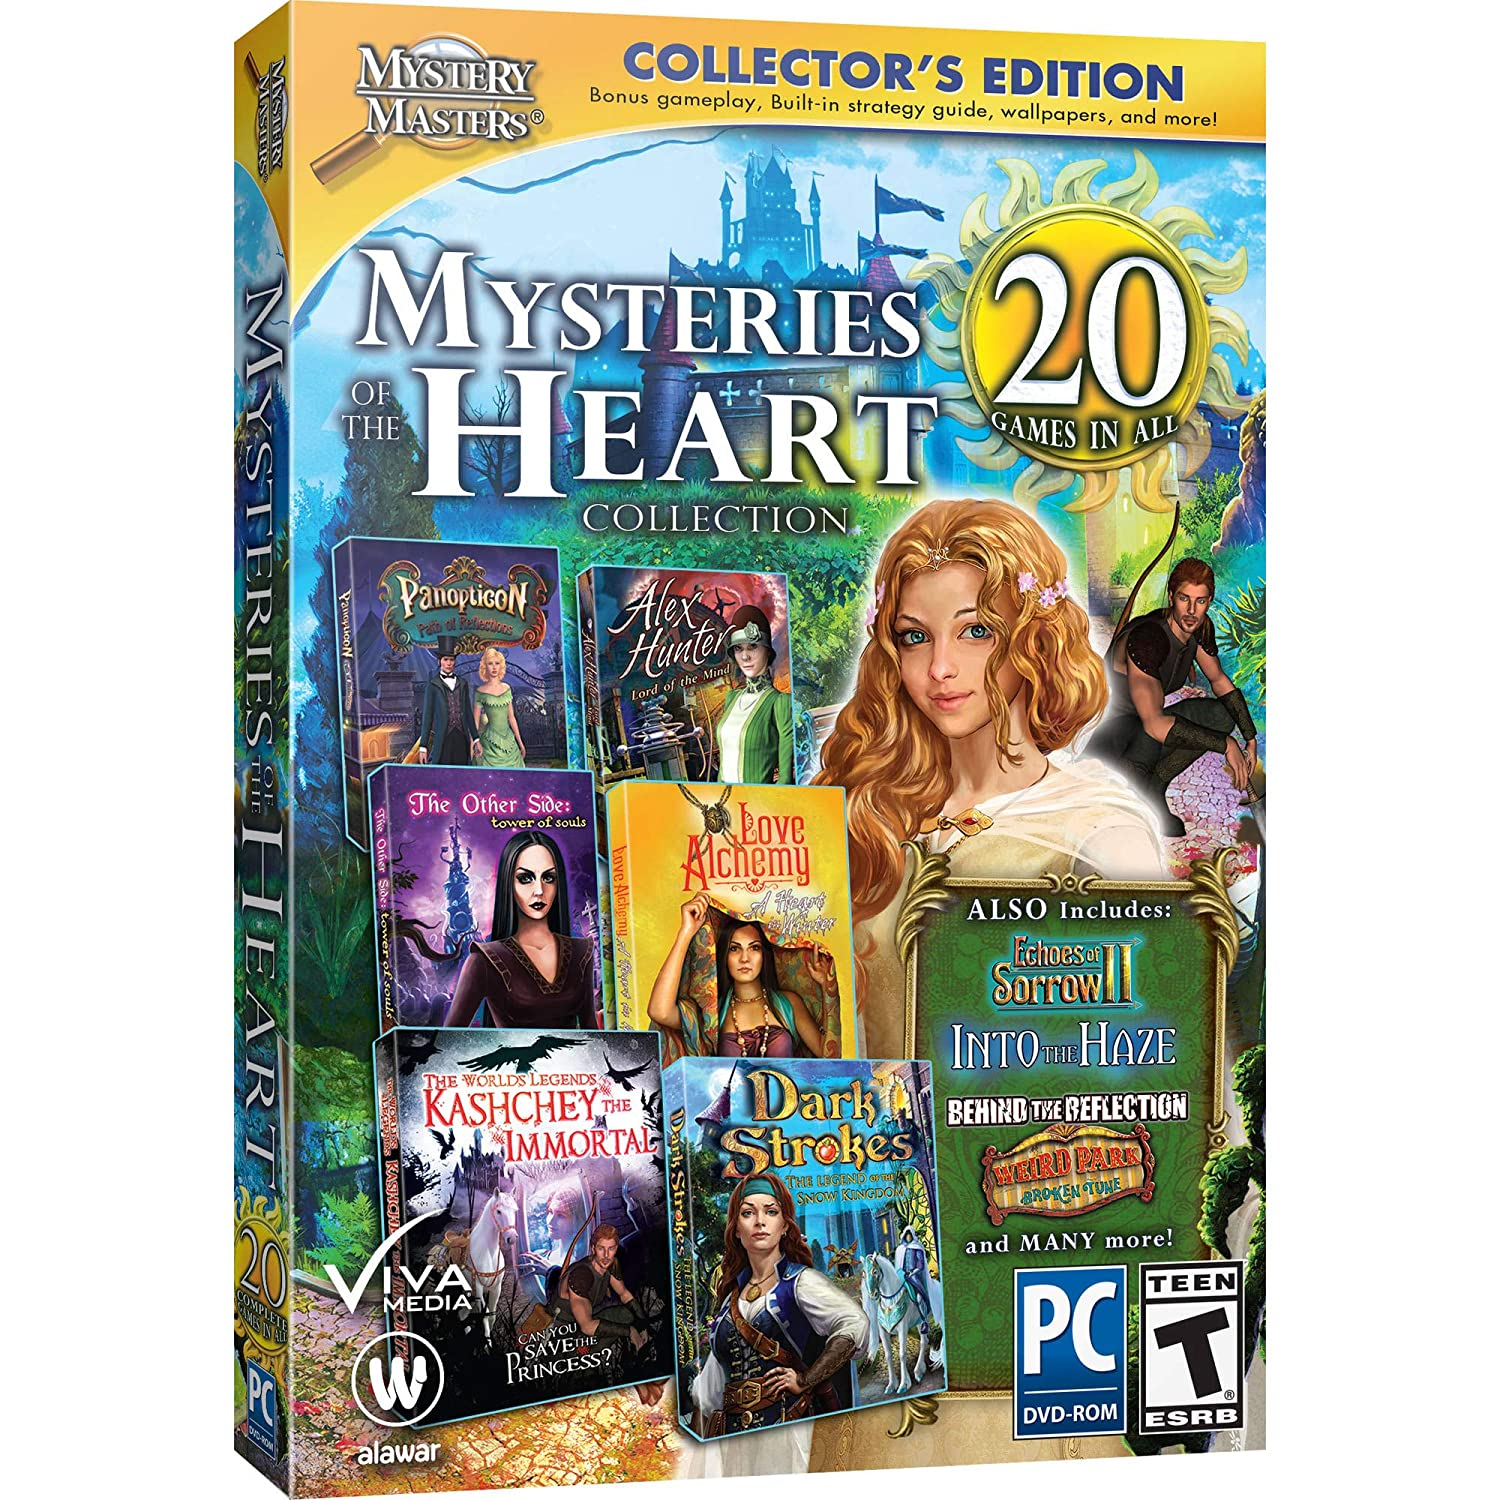 Mystery Masters MYSTERIES OF THE HEART COLLECTION 20 GAMES IN ALL Hidden Object PC Game